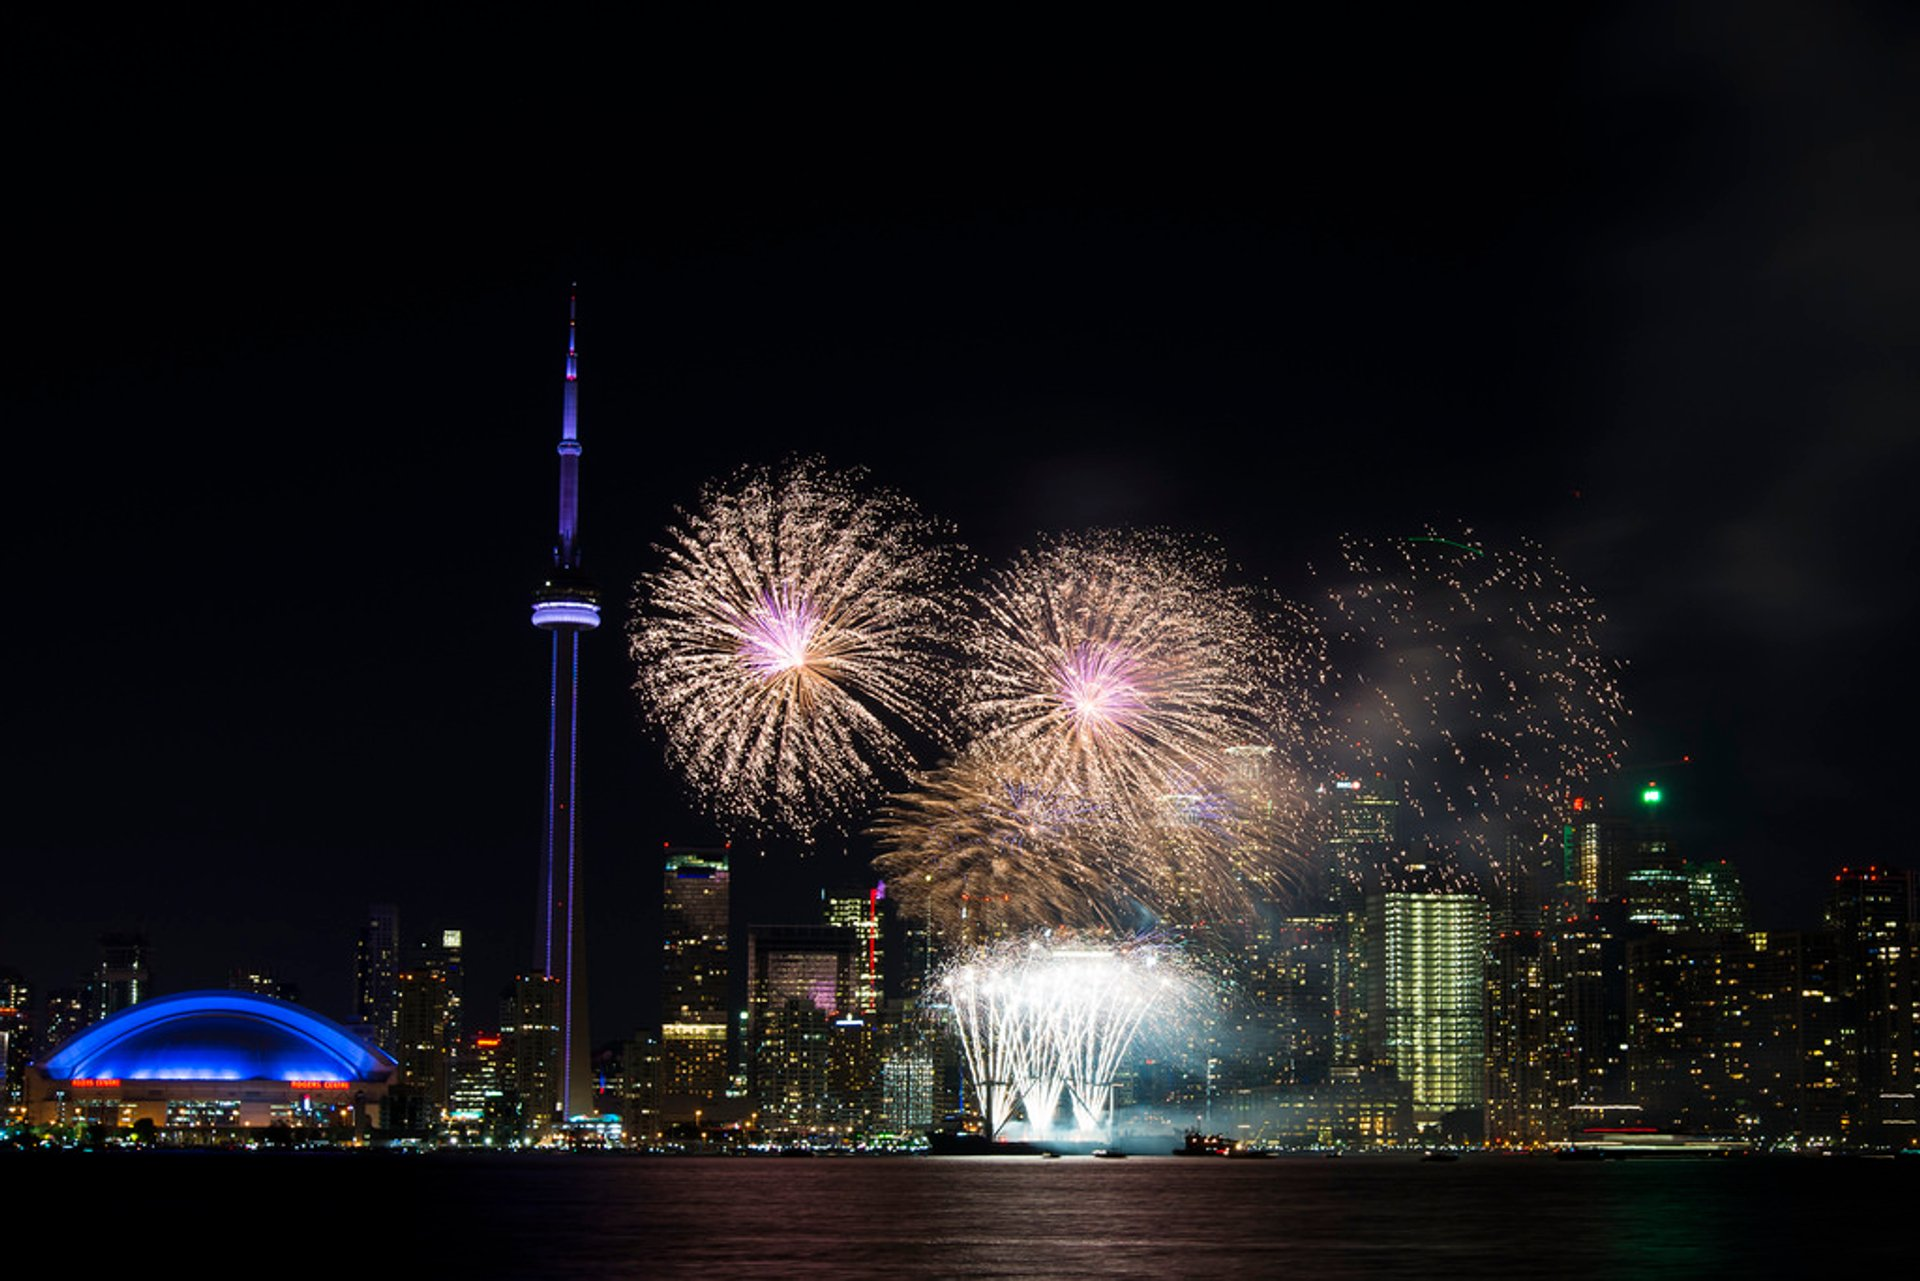 End the day by watching the spectacular Canada Day fireworks finale from Toronto Island 2019